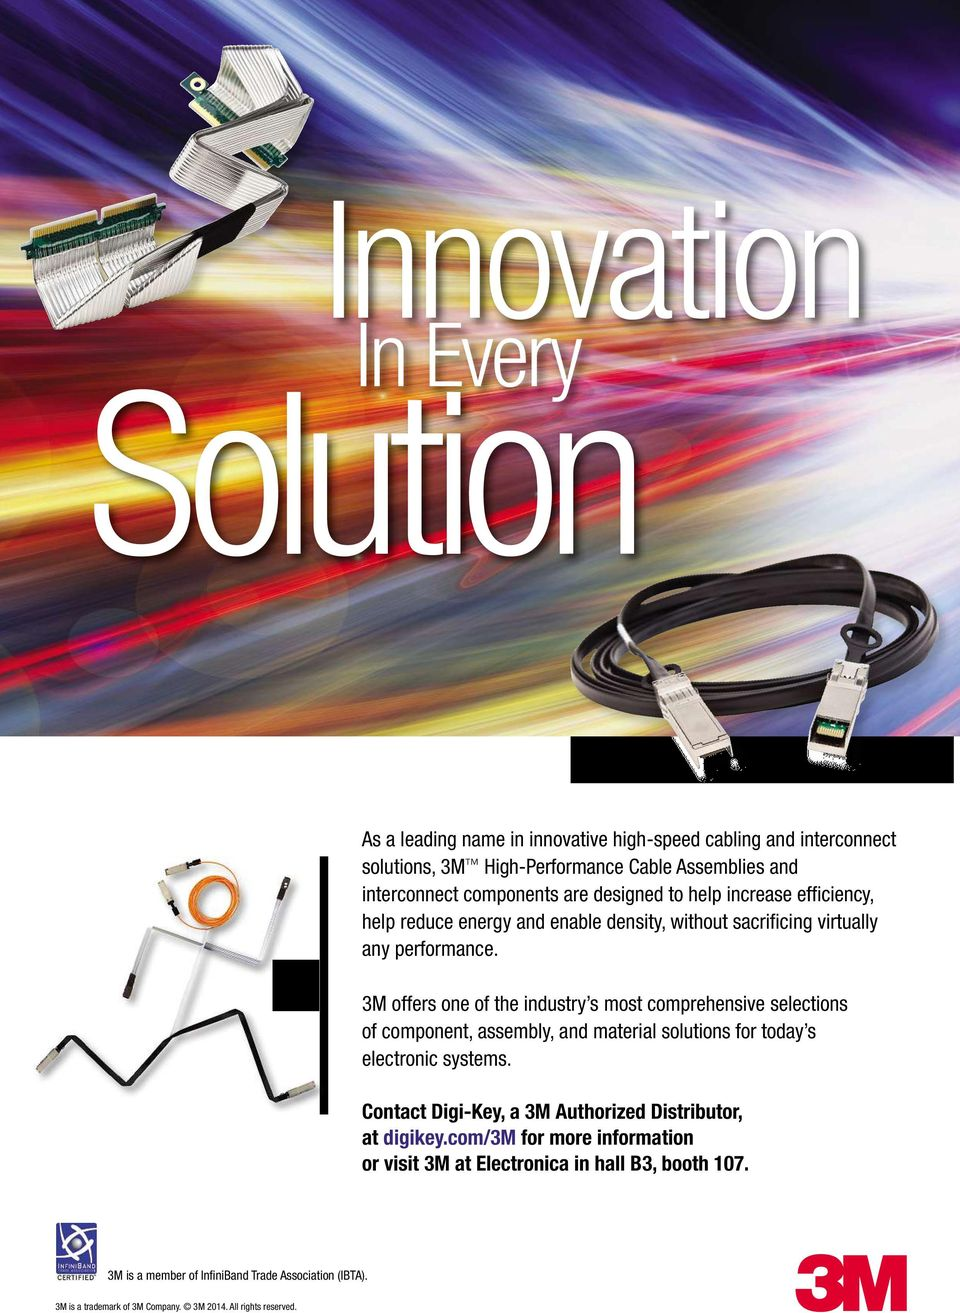 3M offers one of the industry smost comprehensive selections of component, assembly,and material solutions for today s electronic systems.